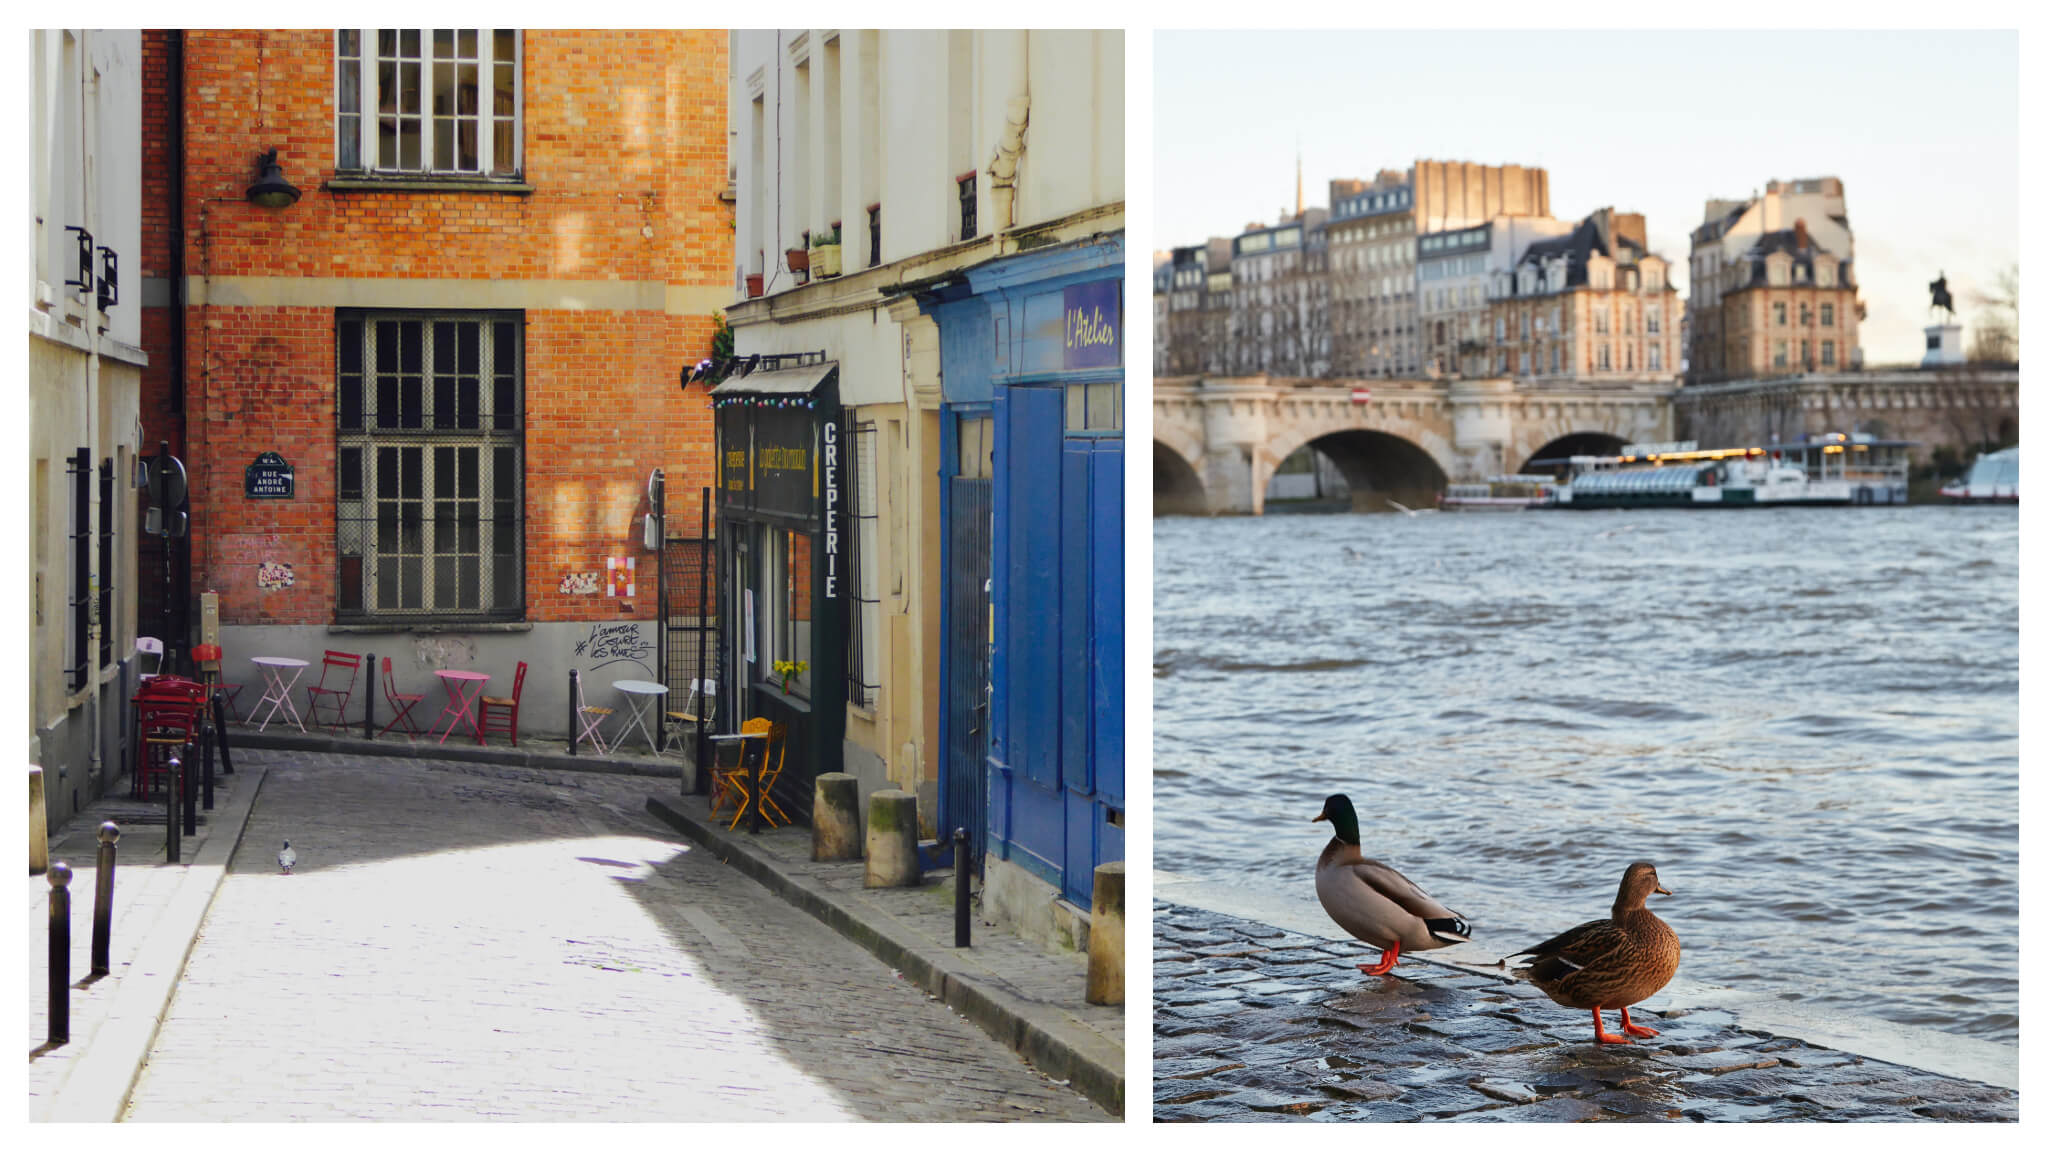 Left: a Parisian cobblestone street with a blue facade of an atelier and a green facade of a creperie on the right. At the end of the street, along the pathway are small tables and chairs outside the creperie. Right: two ducks on the wet cobblestone bank of the Seine river in Paris. In the distance is a bridge and Île de la Cité.